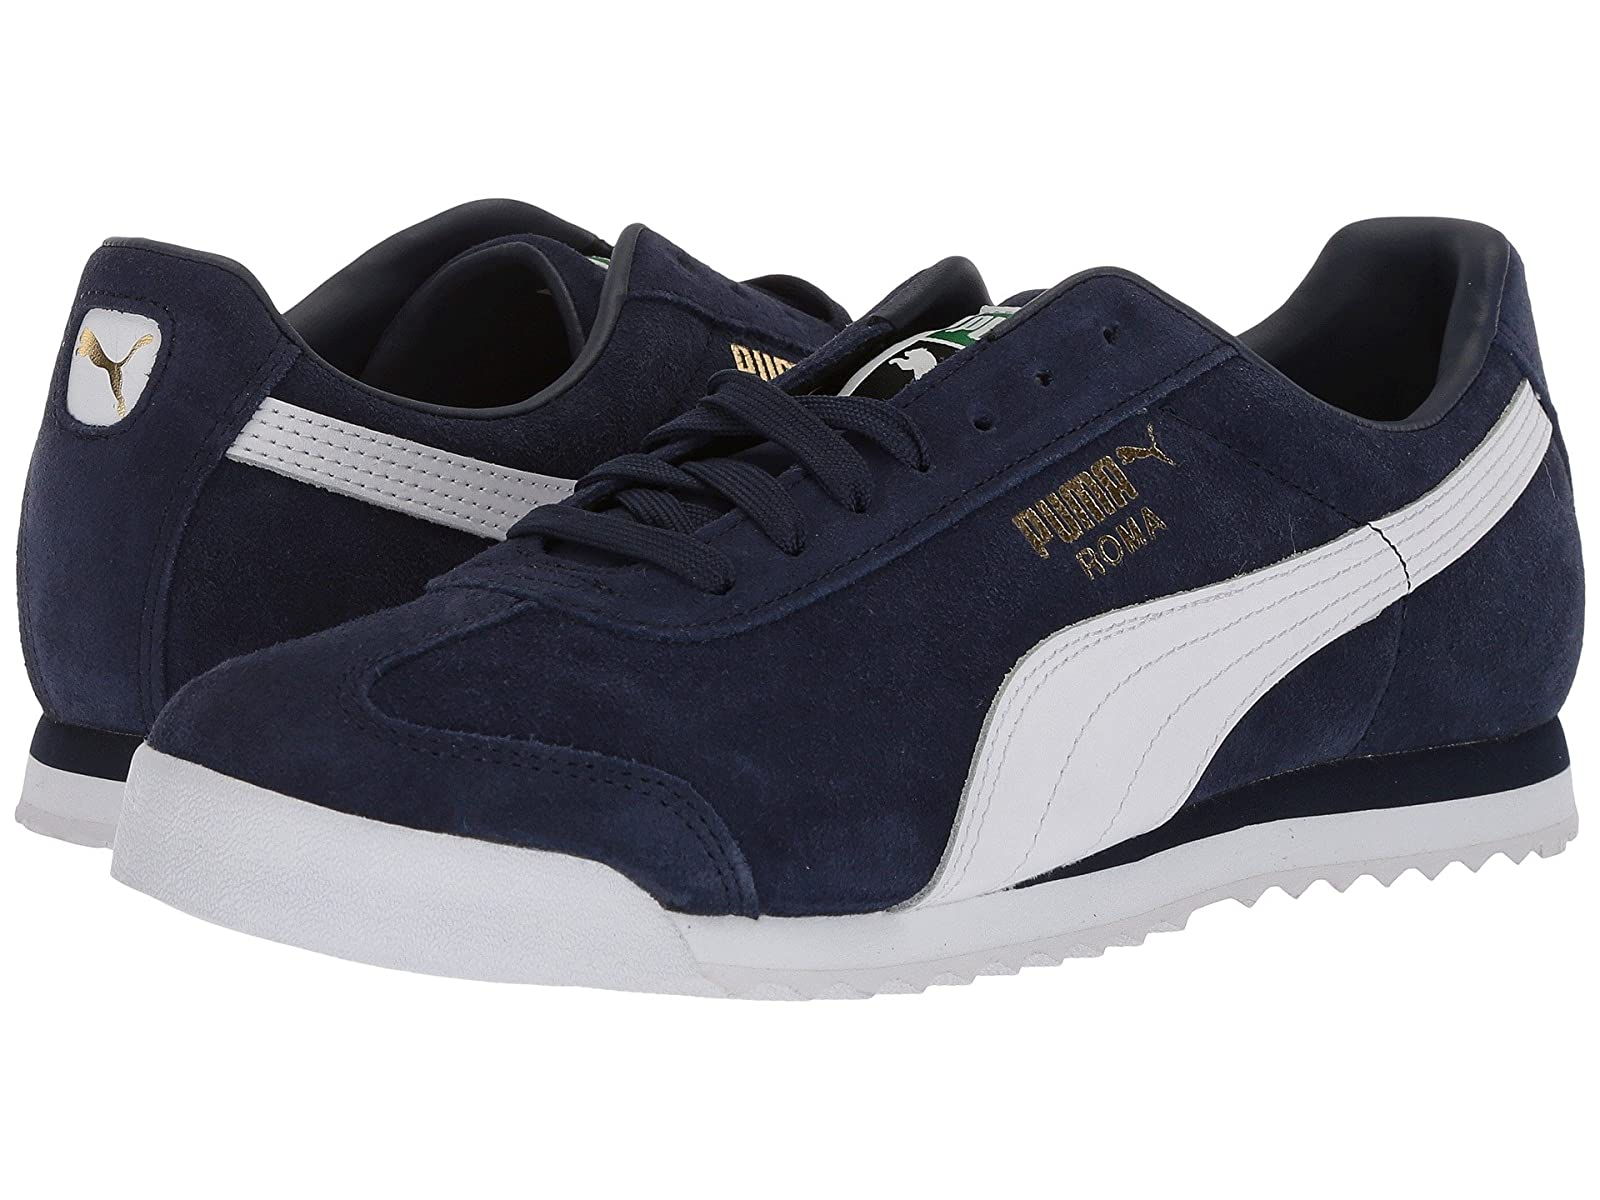 PUMA Roma SuedeAtmospheric grades have affordable shoes